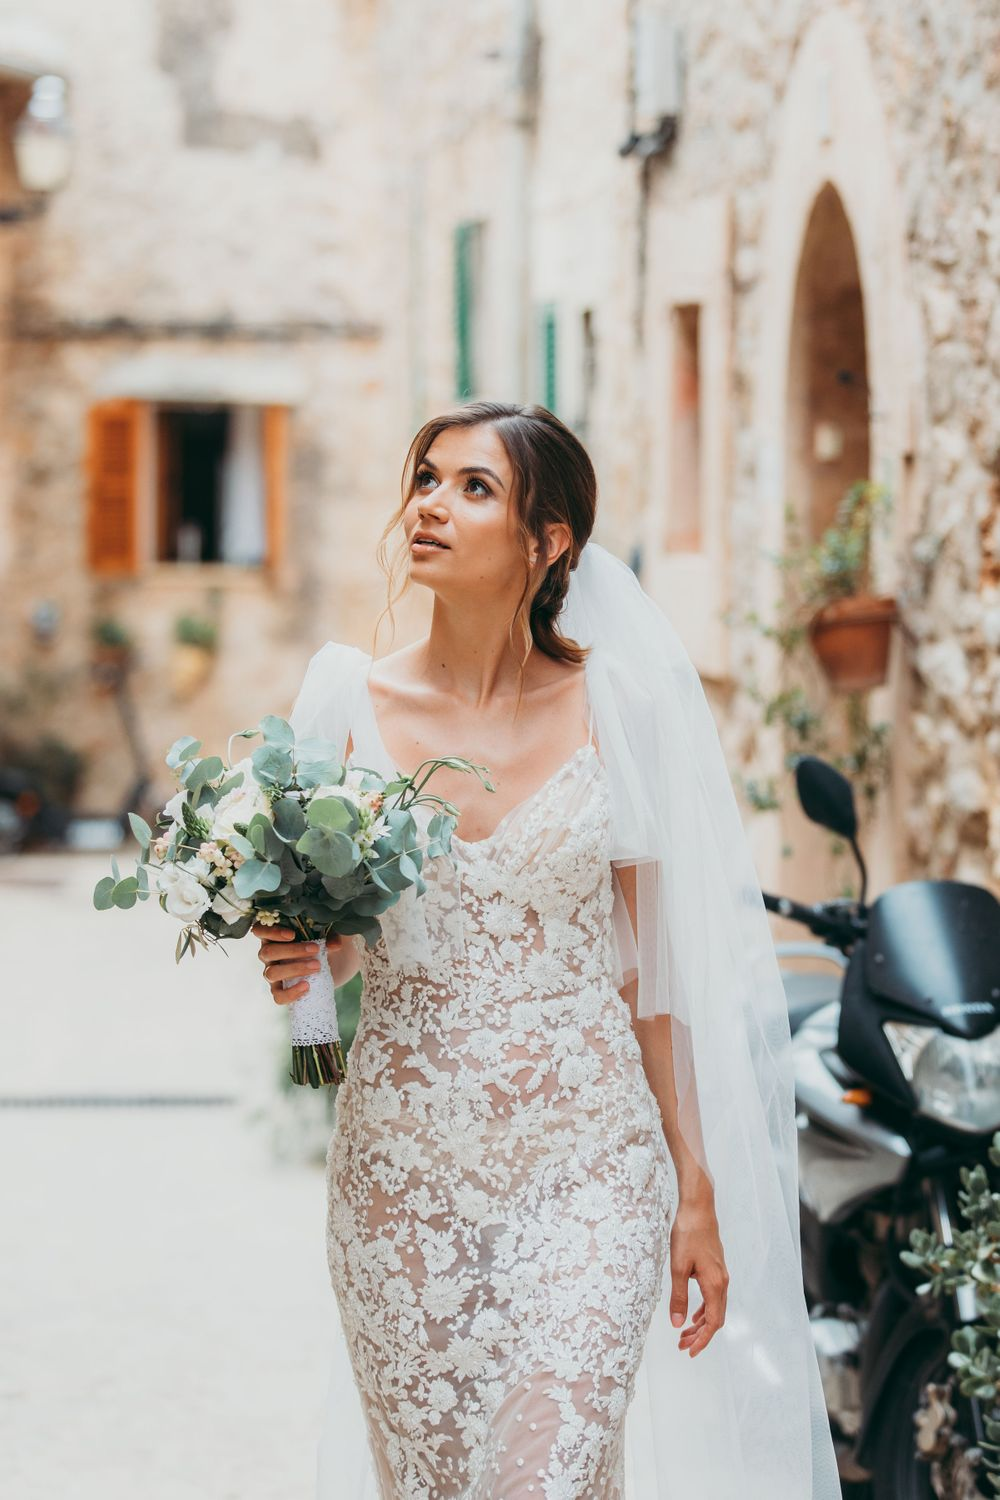 Gorgeous bride wearing a lace dress in Valdemossa, Mallorca, lace-wedding-dress